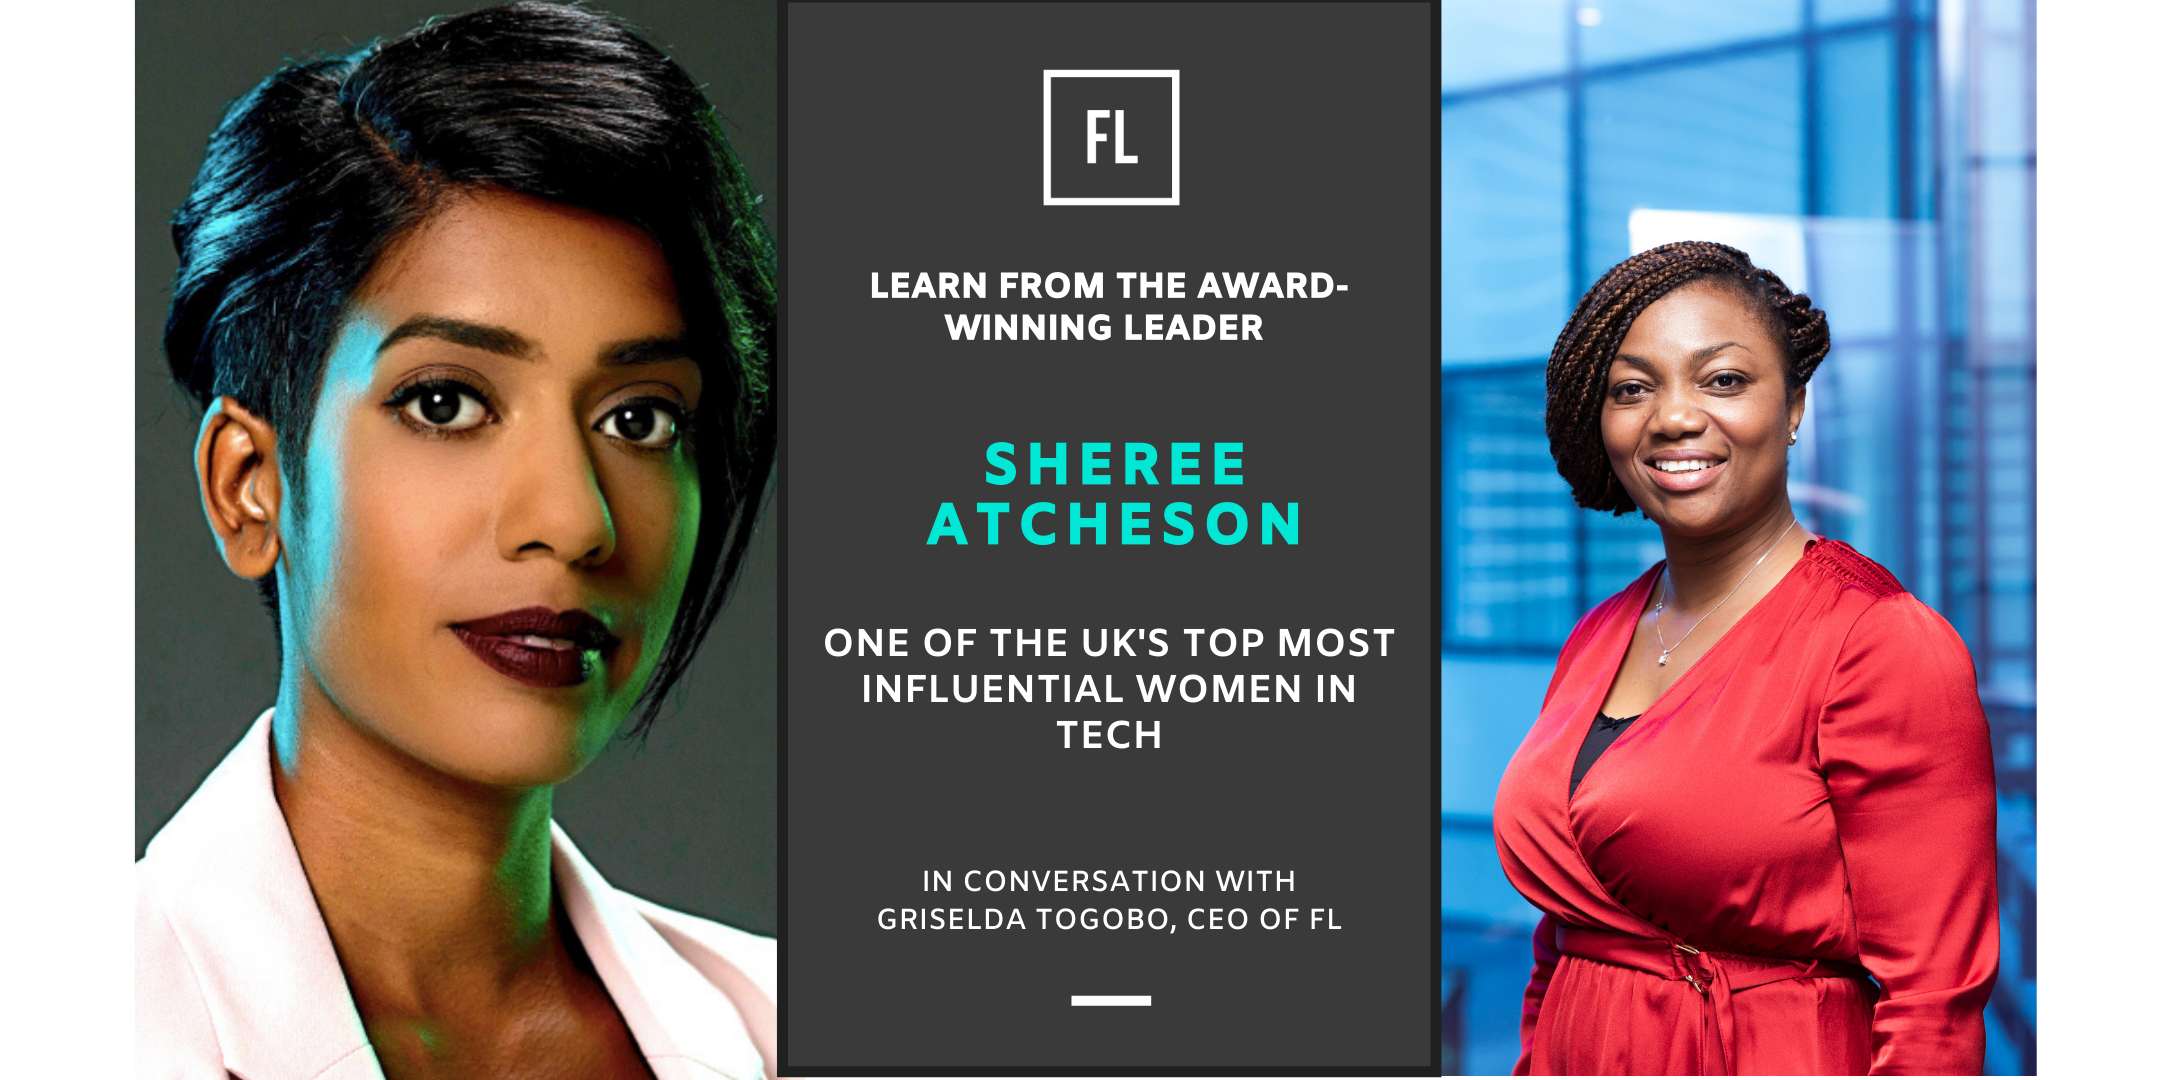 In Conversation With Sheree Atcheson, Top Most Influential Woman In Tech